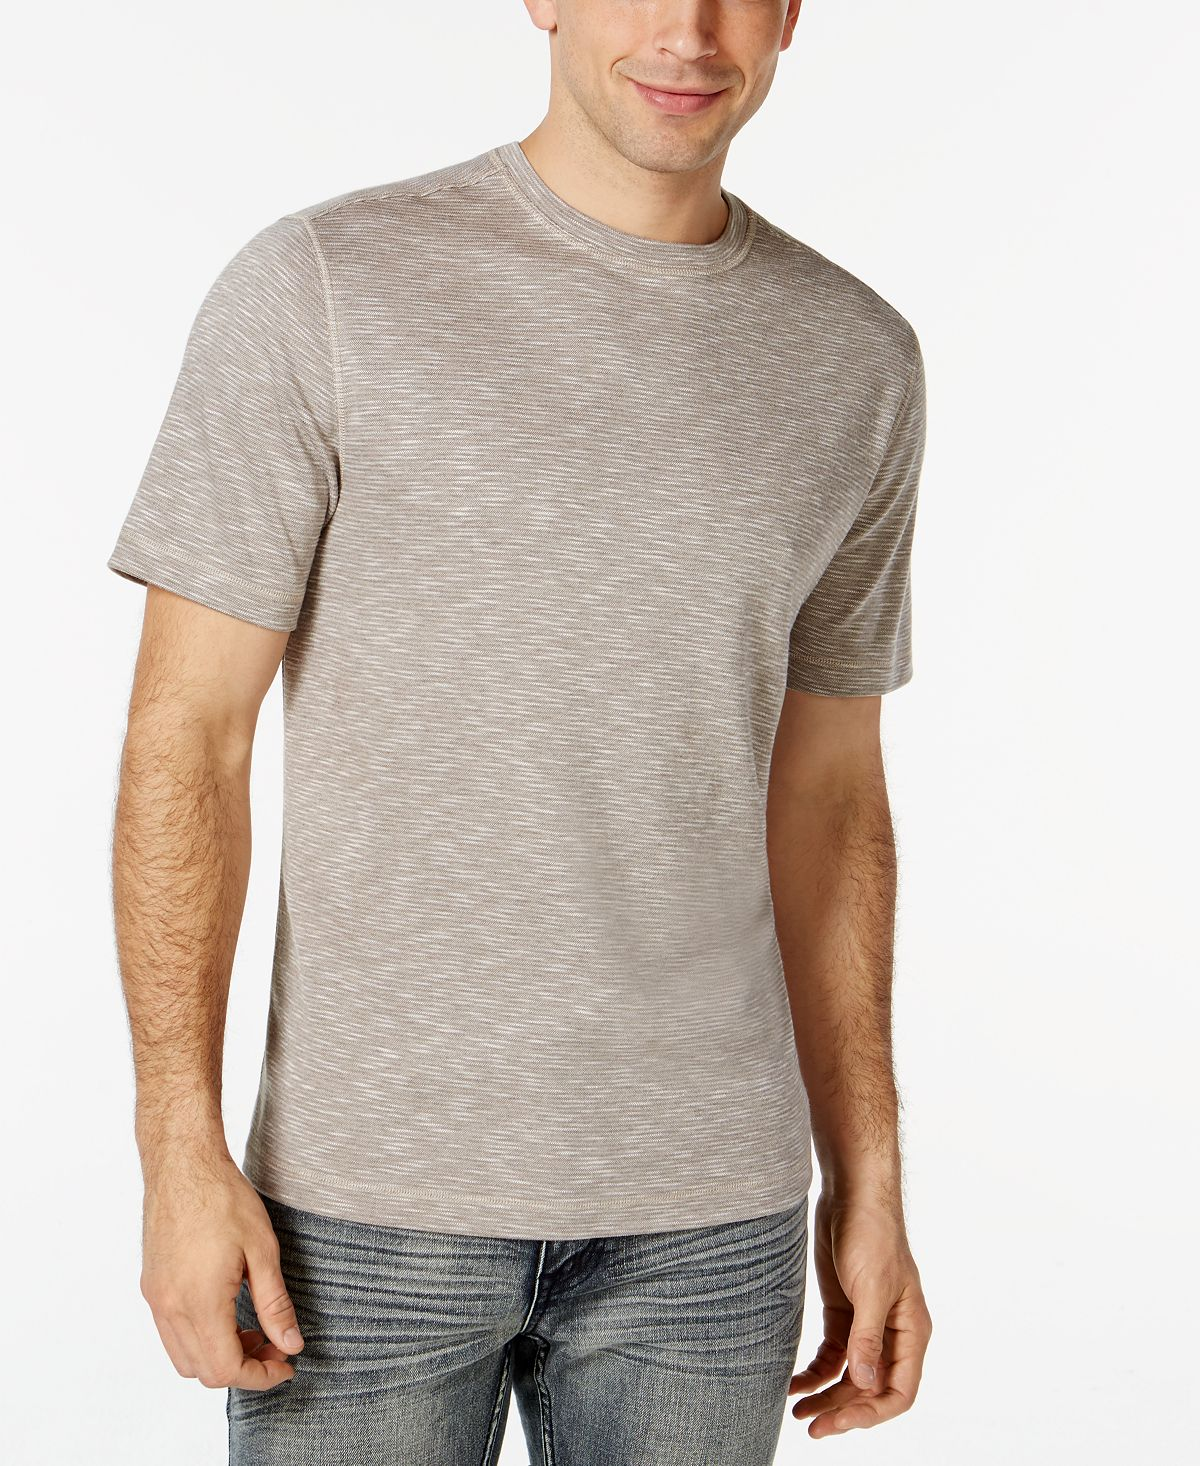 Tasso Elba Upf 30+ Performance Crew Neck Shirt